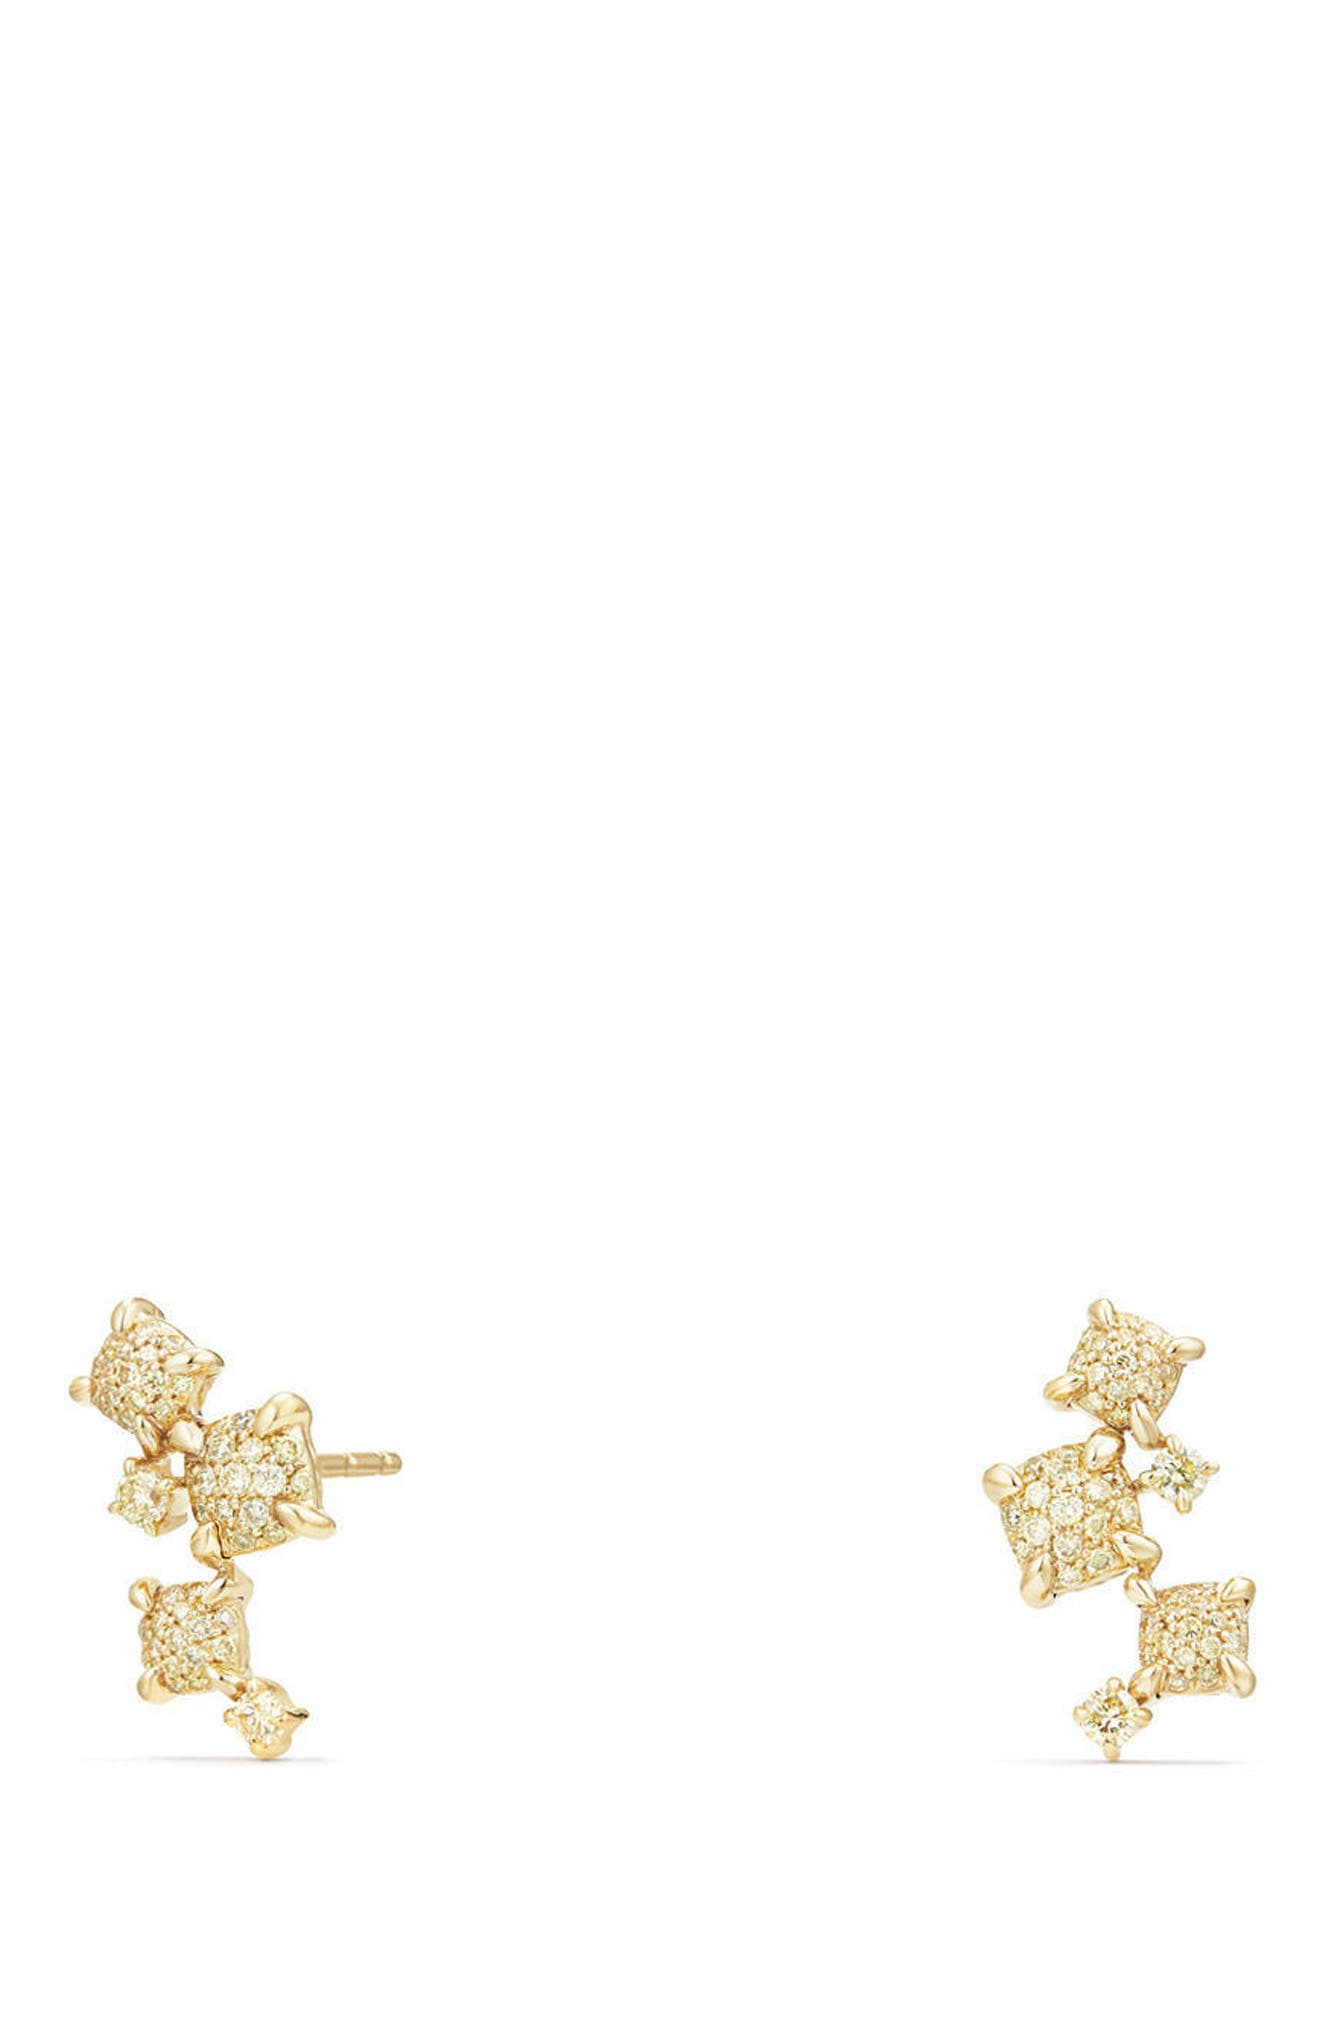 Petite Châtelaine Climber Earrings in 18K Gold with Diamonds,                             Main thumbnail 1, color,                             Yellow Diamond